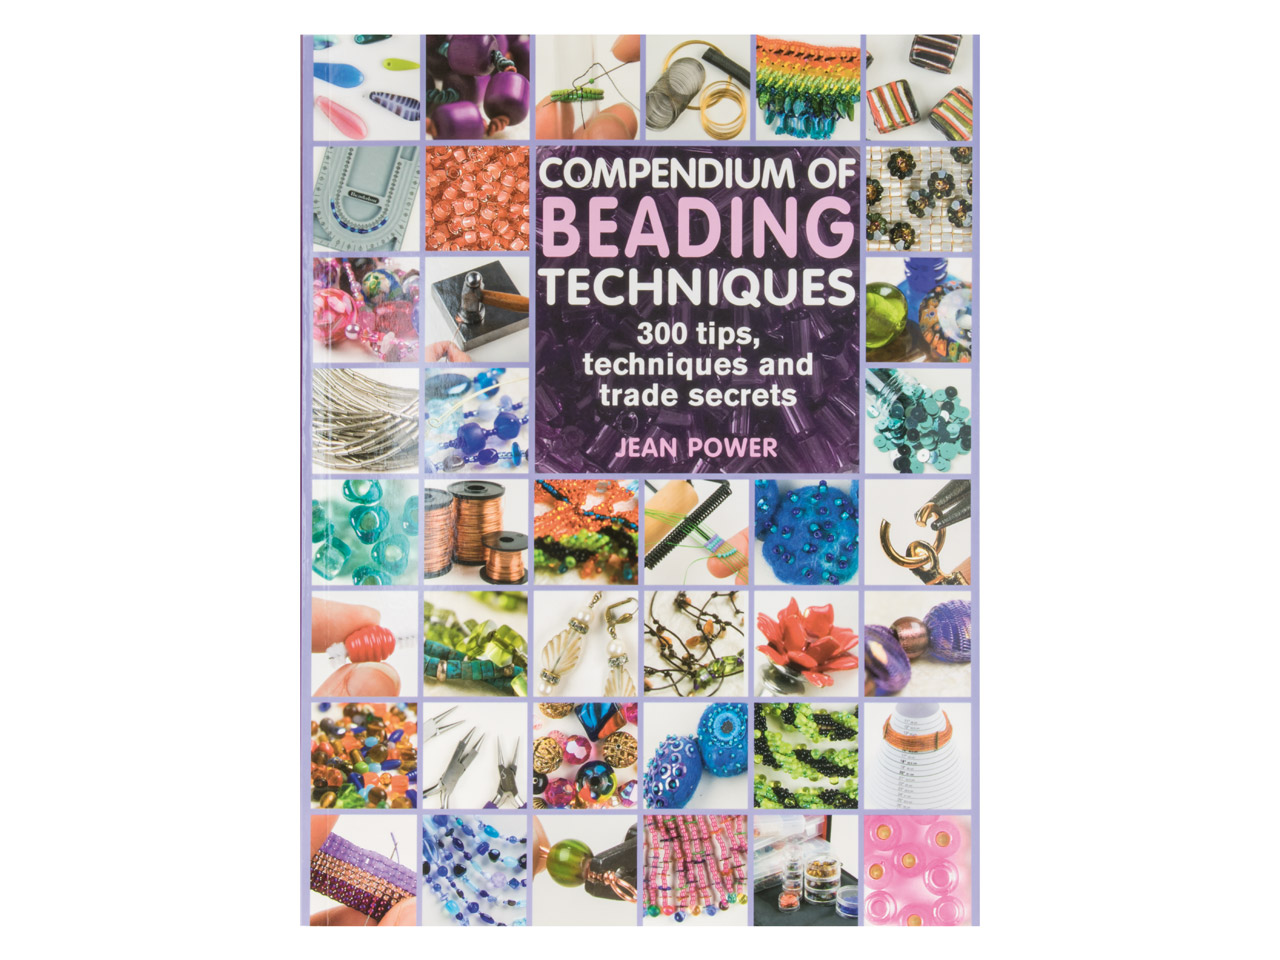 Compendium Of Beading Techniques By Jean Power